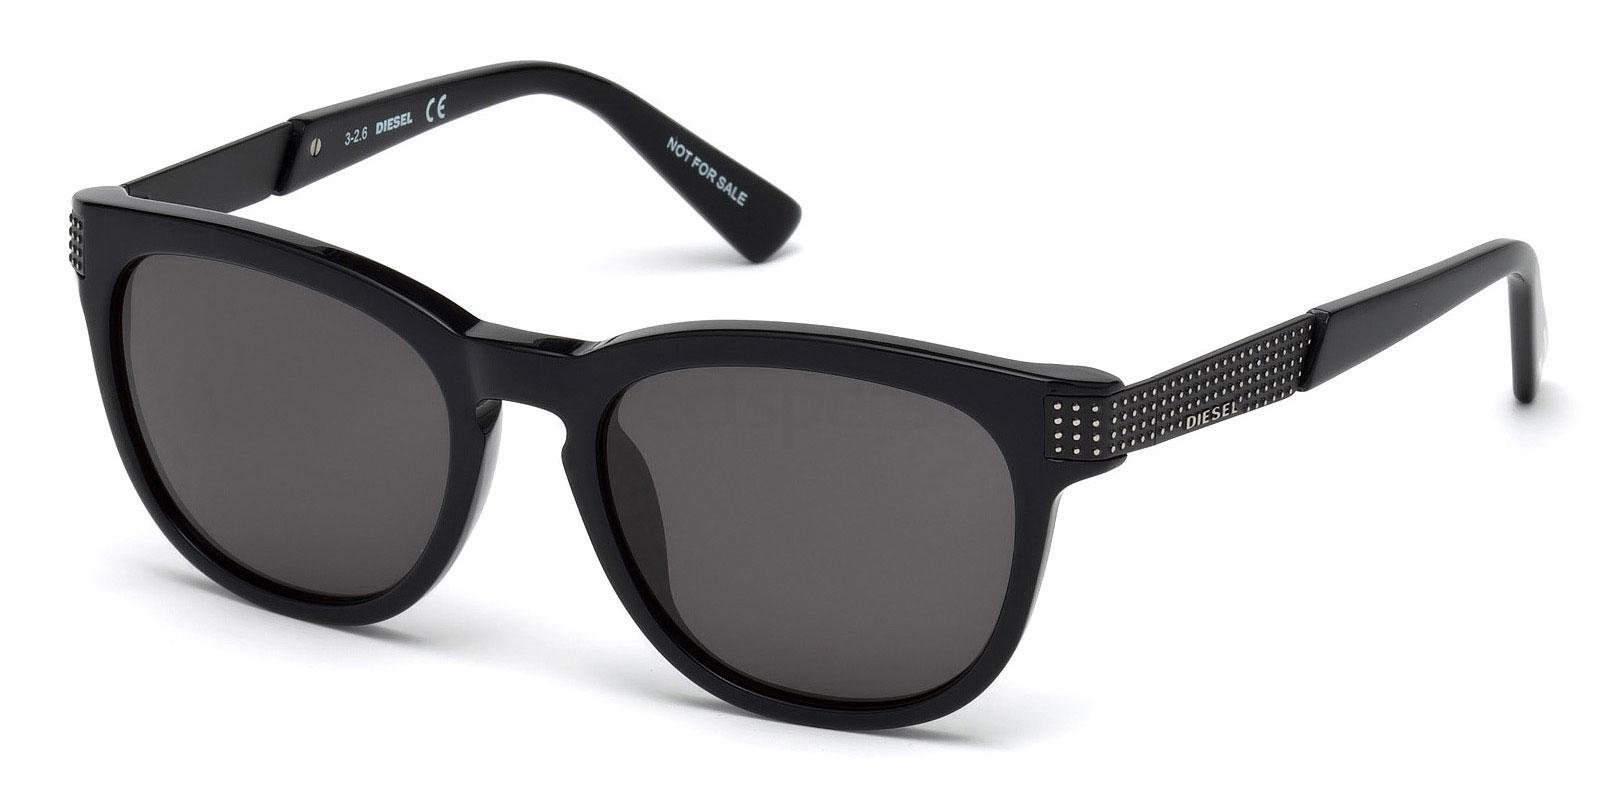 01A DL0237 Sunglasses, Diesel